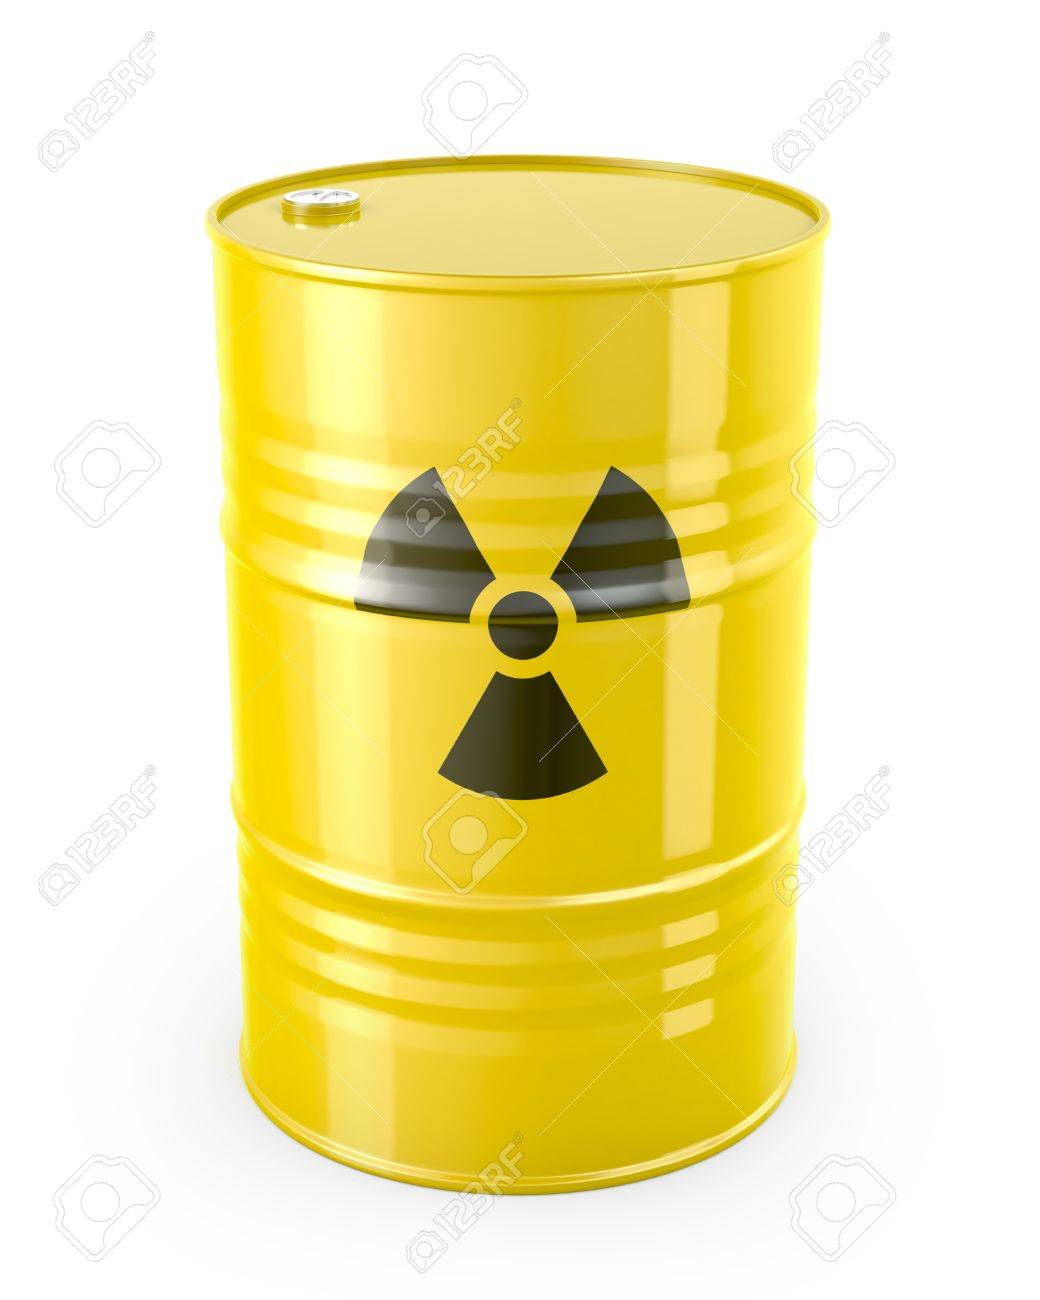 Barrel with radioactive symbol, isolated on white background Stock Photo - 14839870